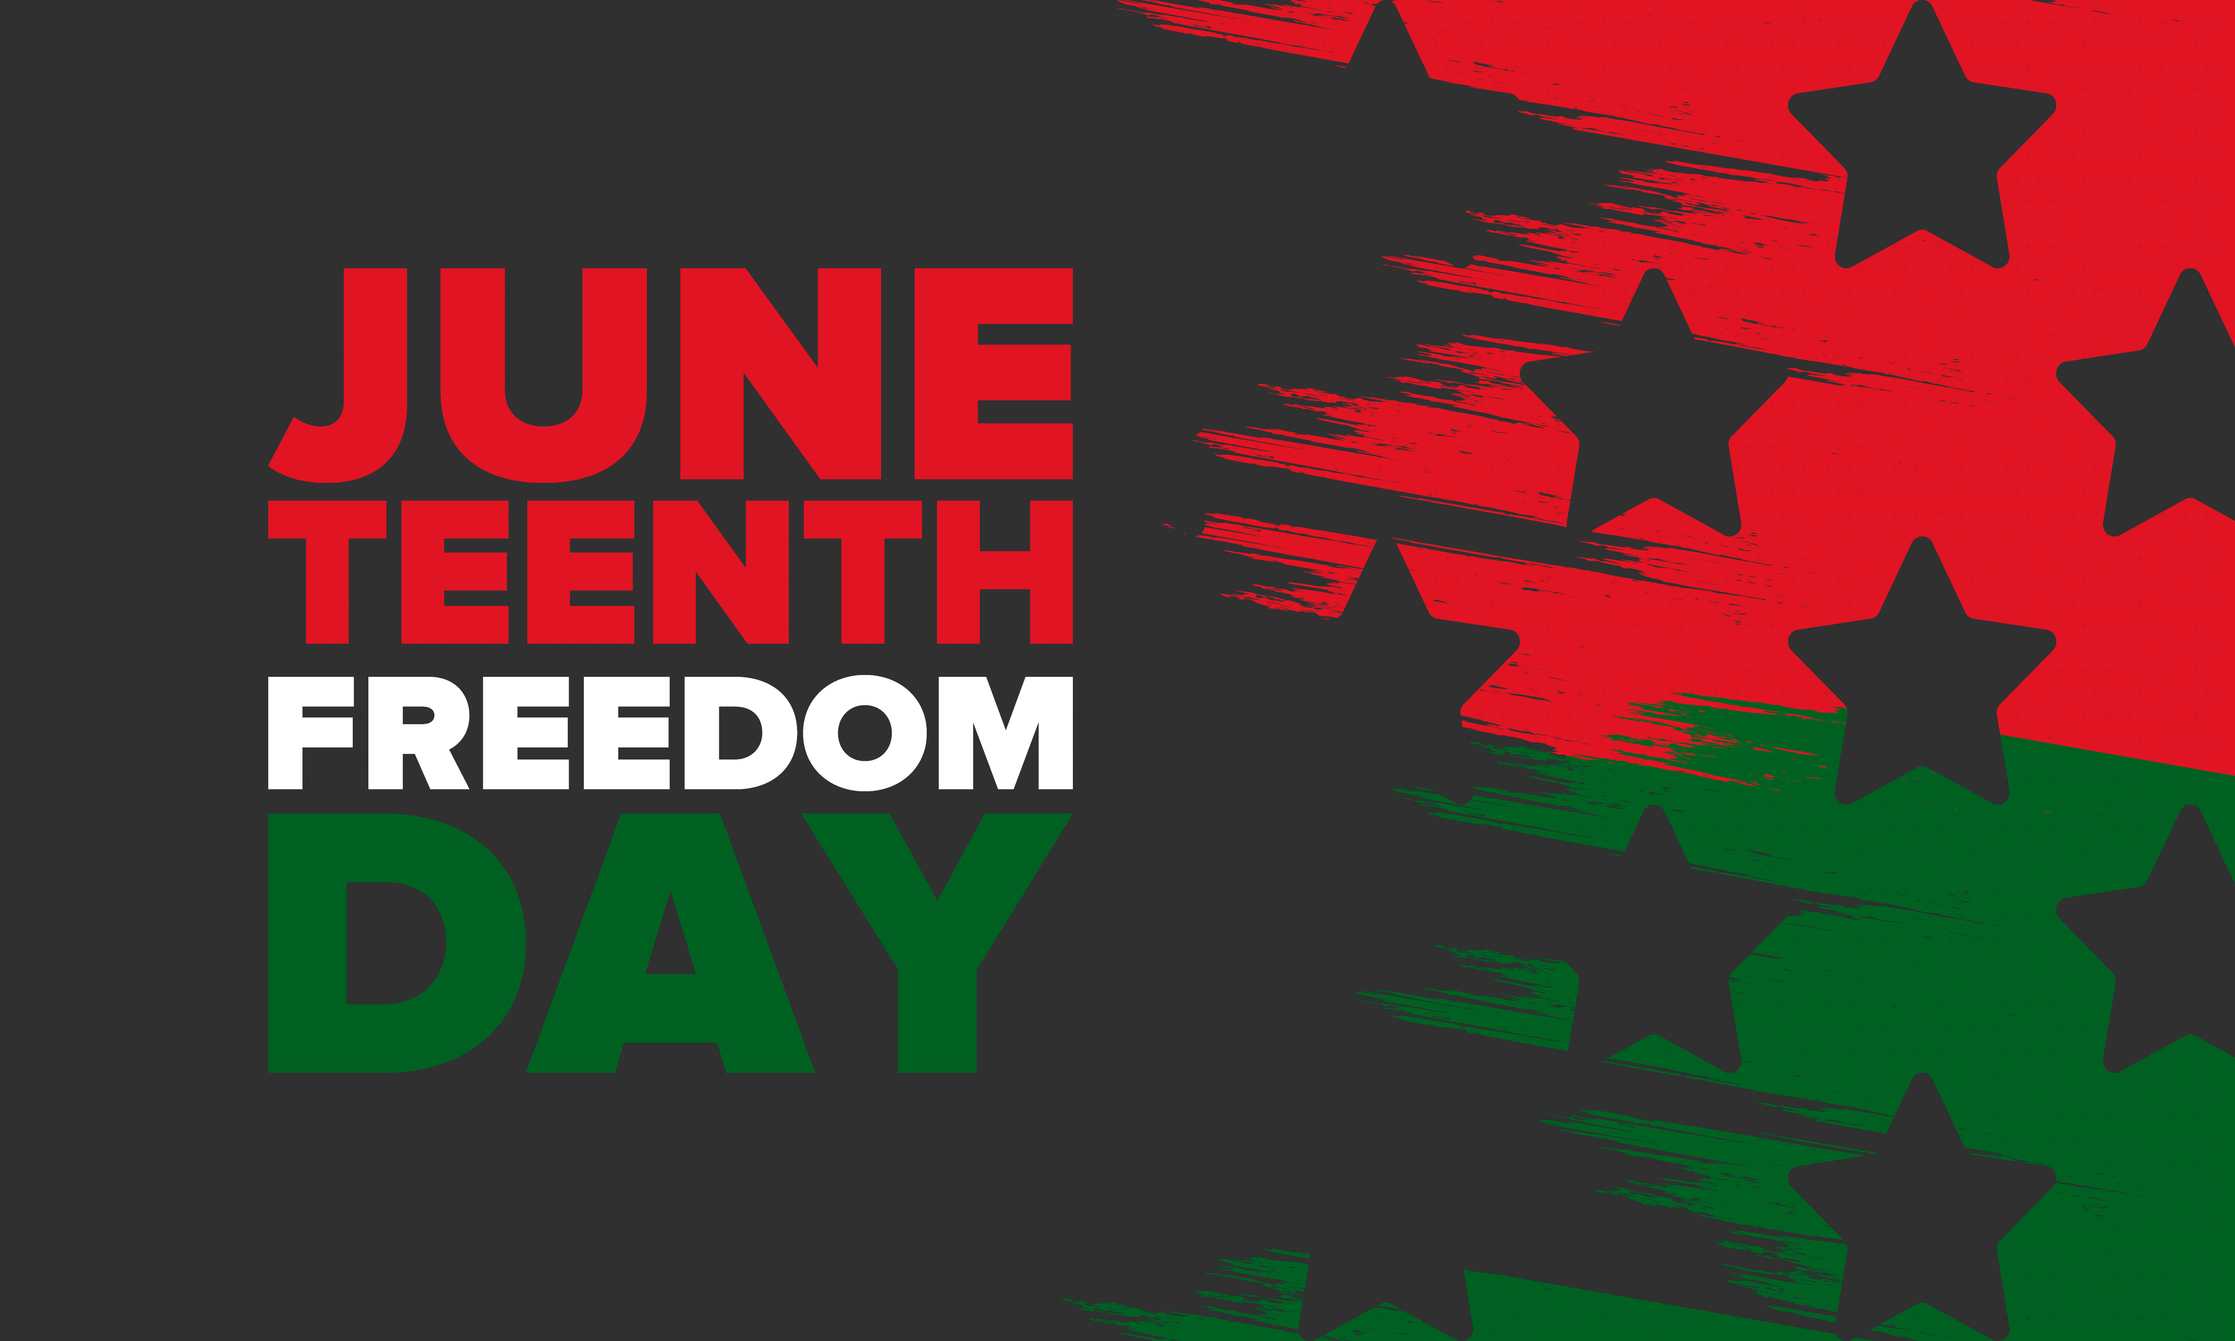 Juneteenth 2020 logo for 6/19/20 webinar